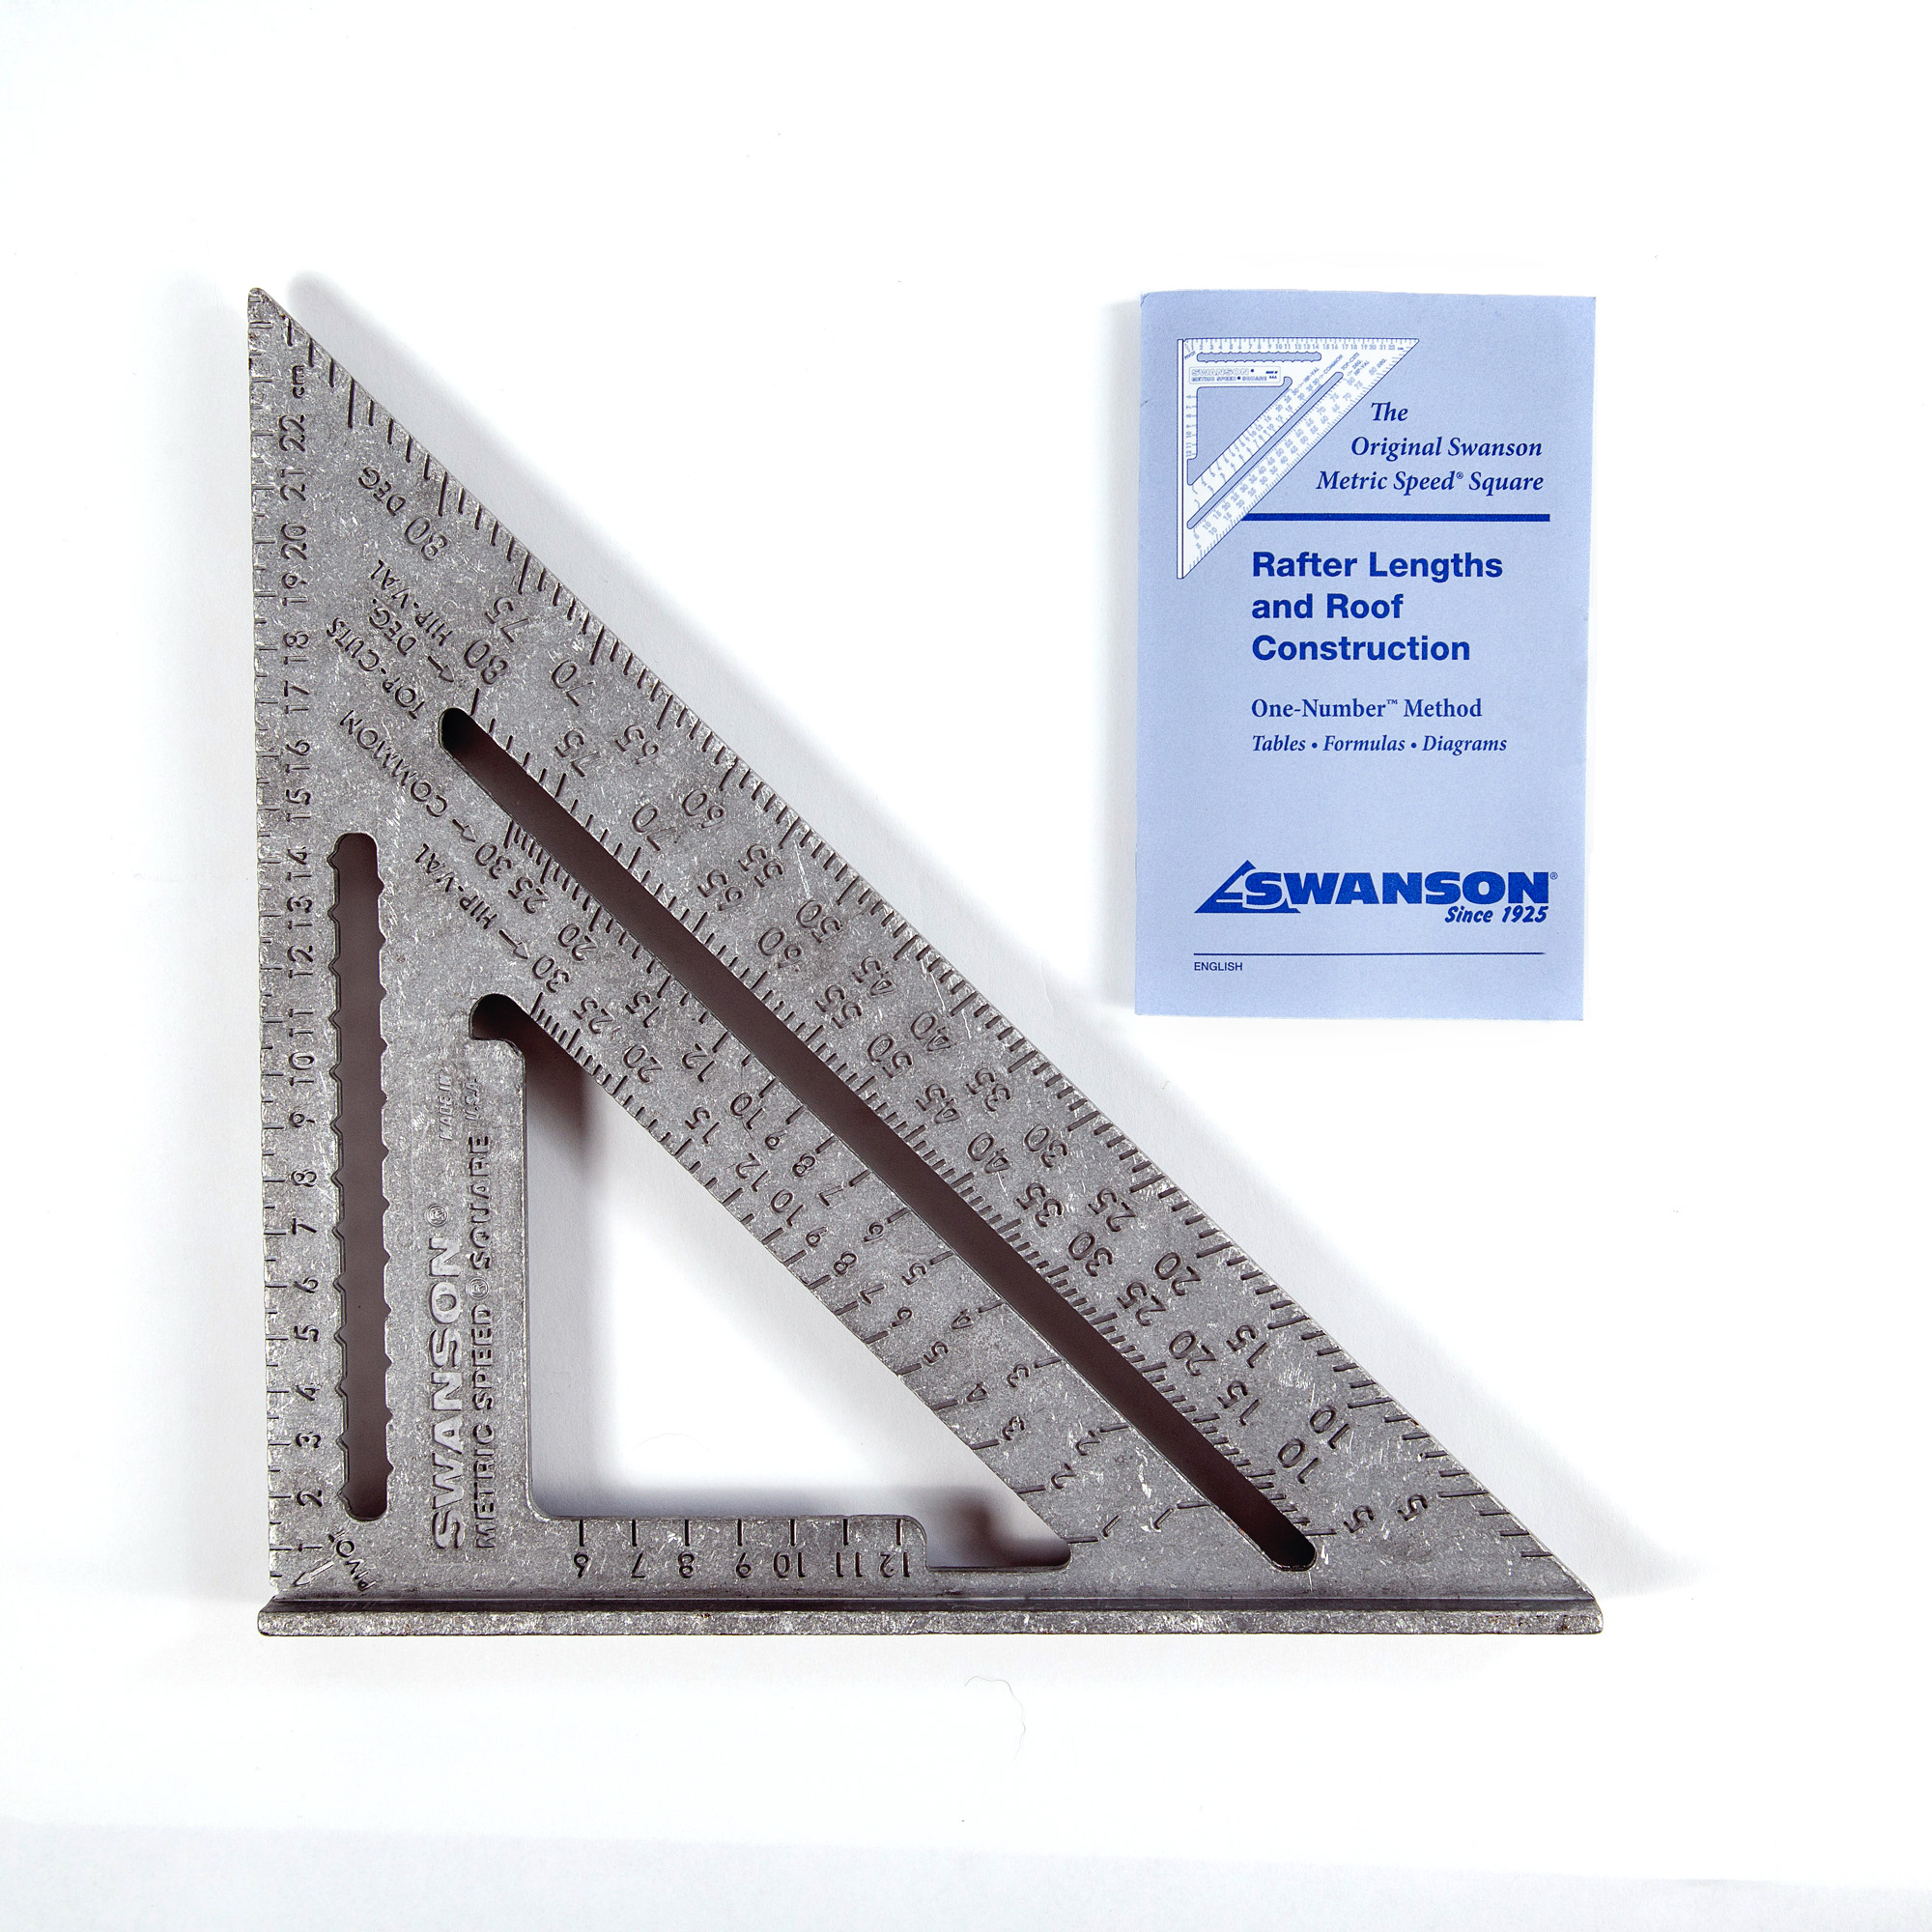 ... Product Images Swanson Tool Company; Vada Llc; How Much Square Footage  ...